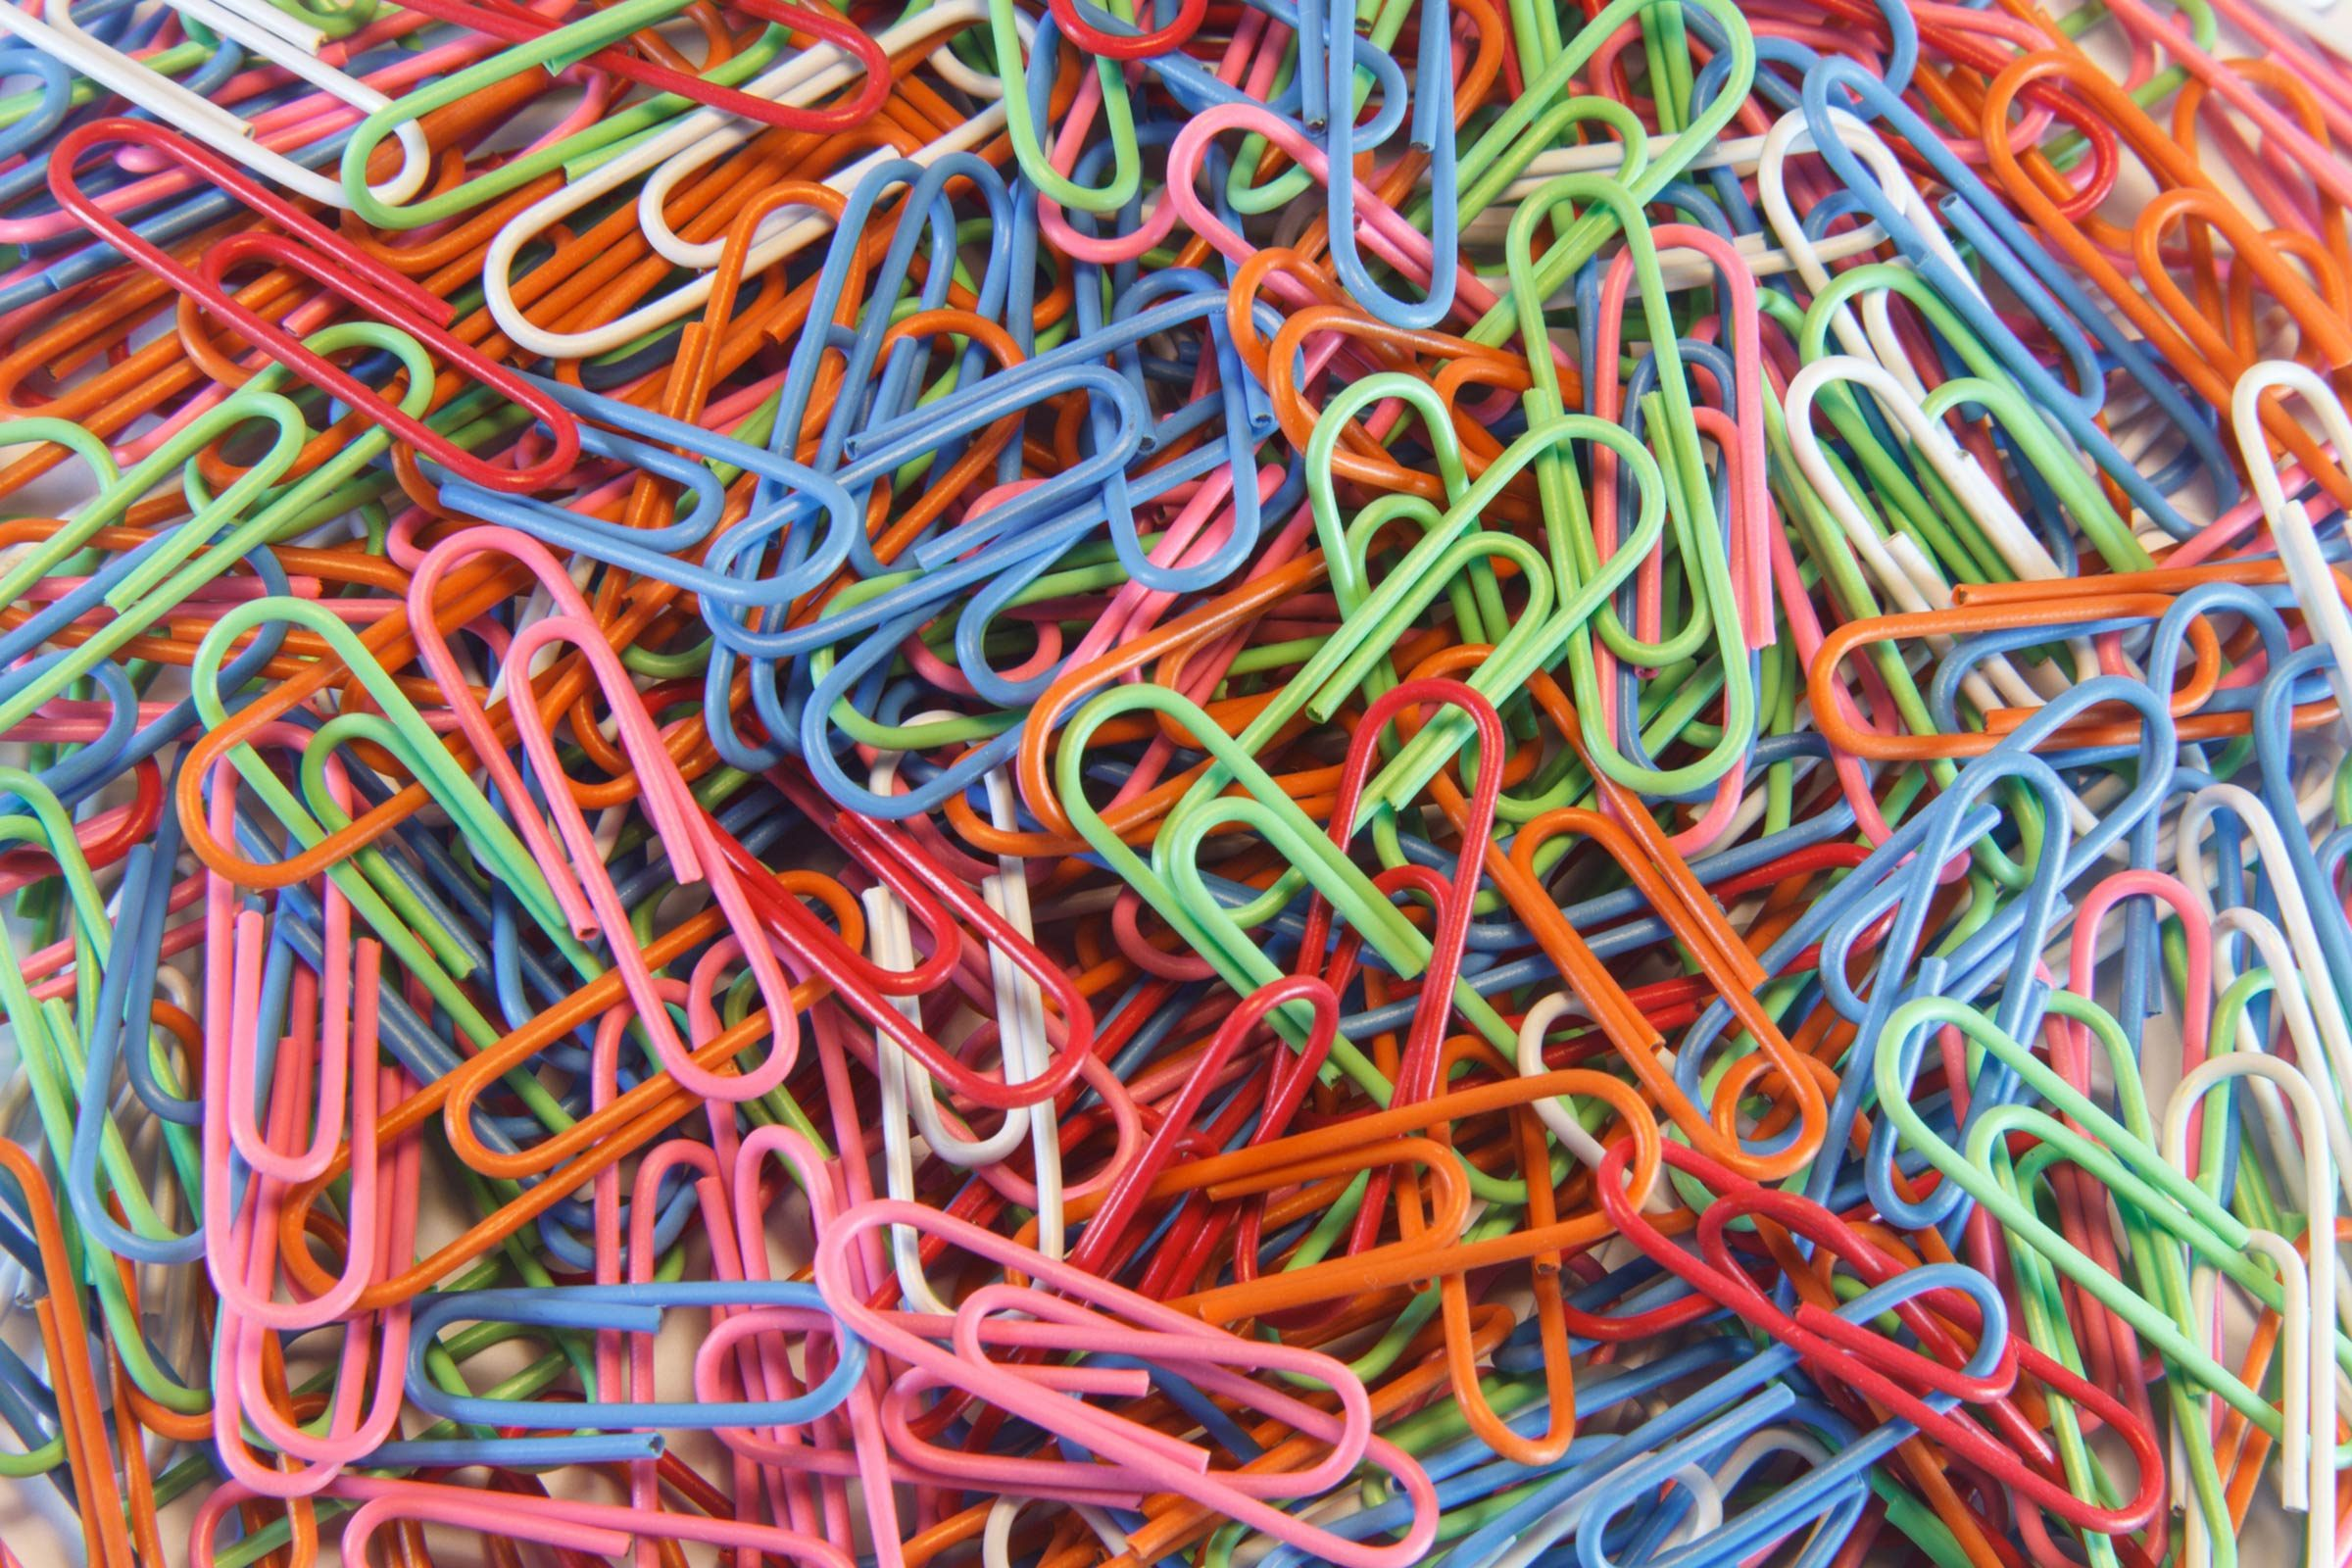 things that wreck your teeth   colourful paper clips